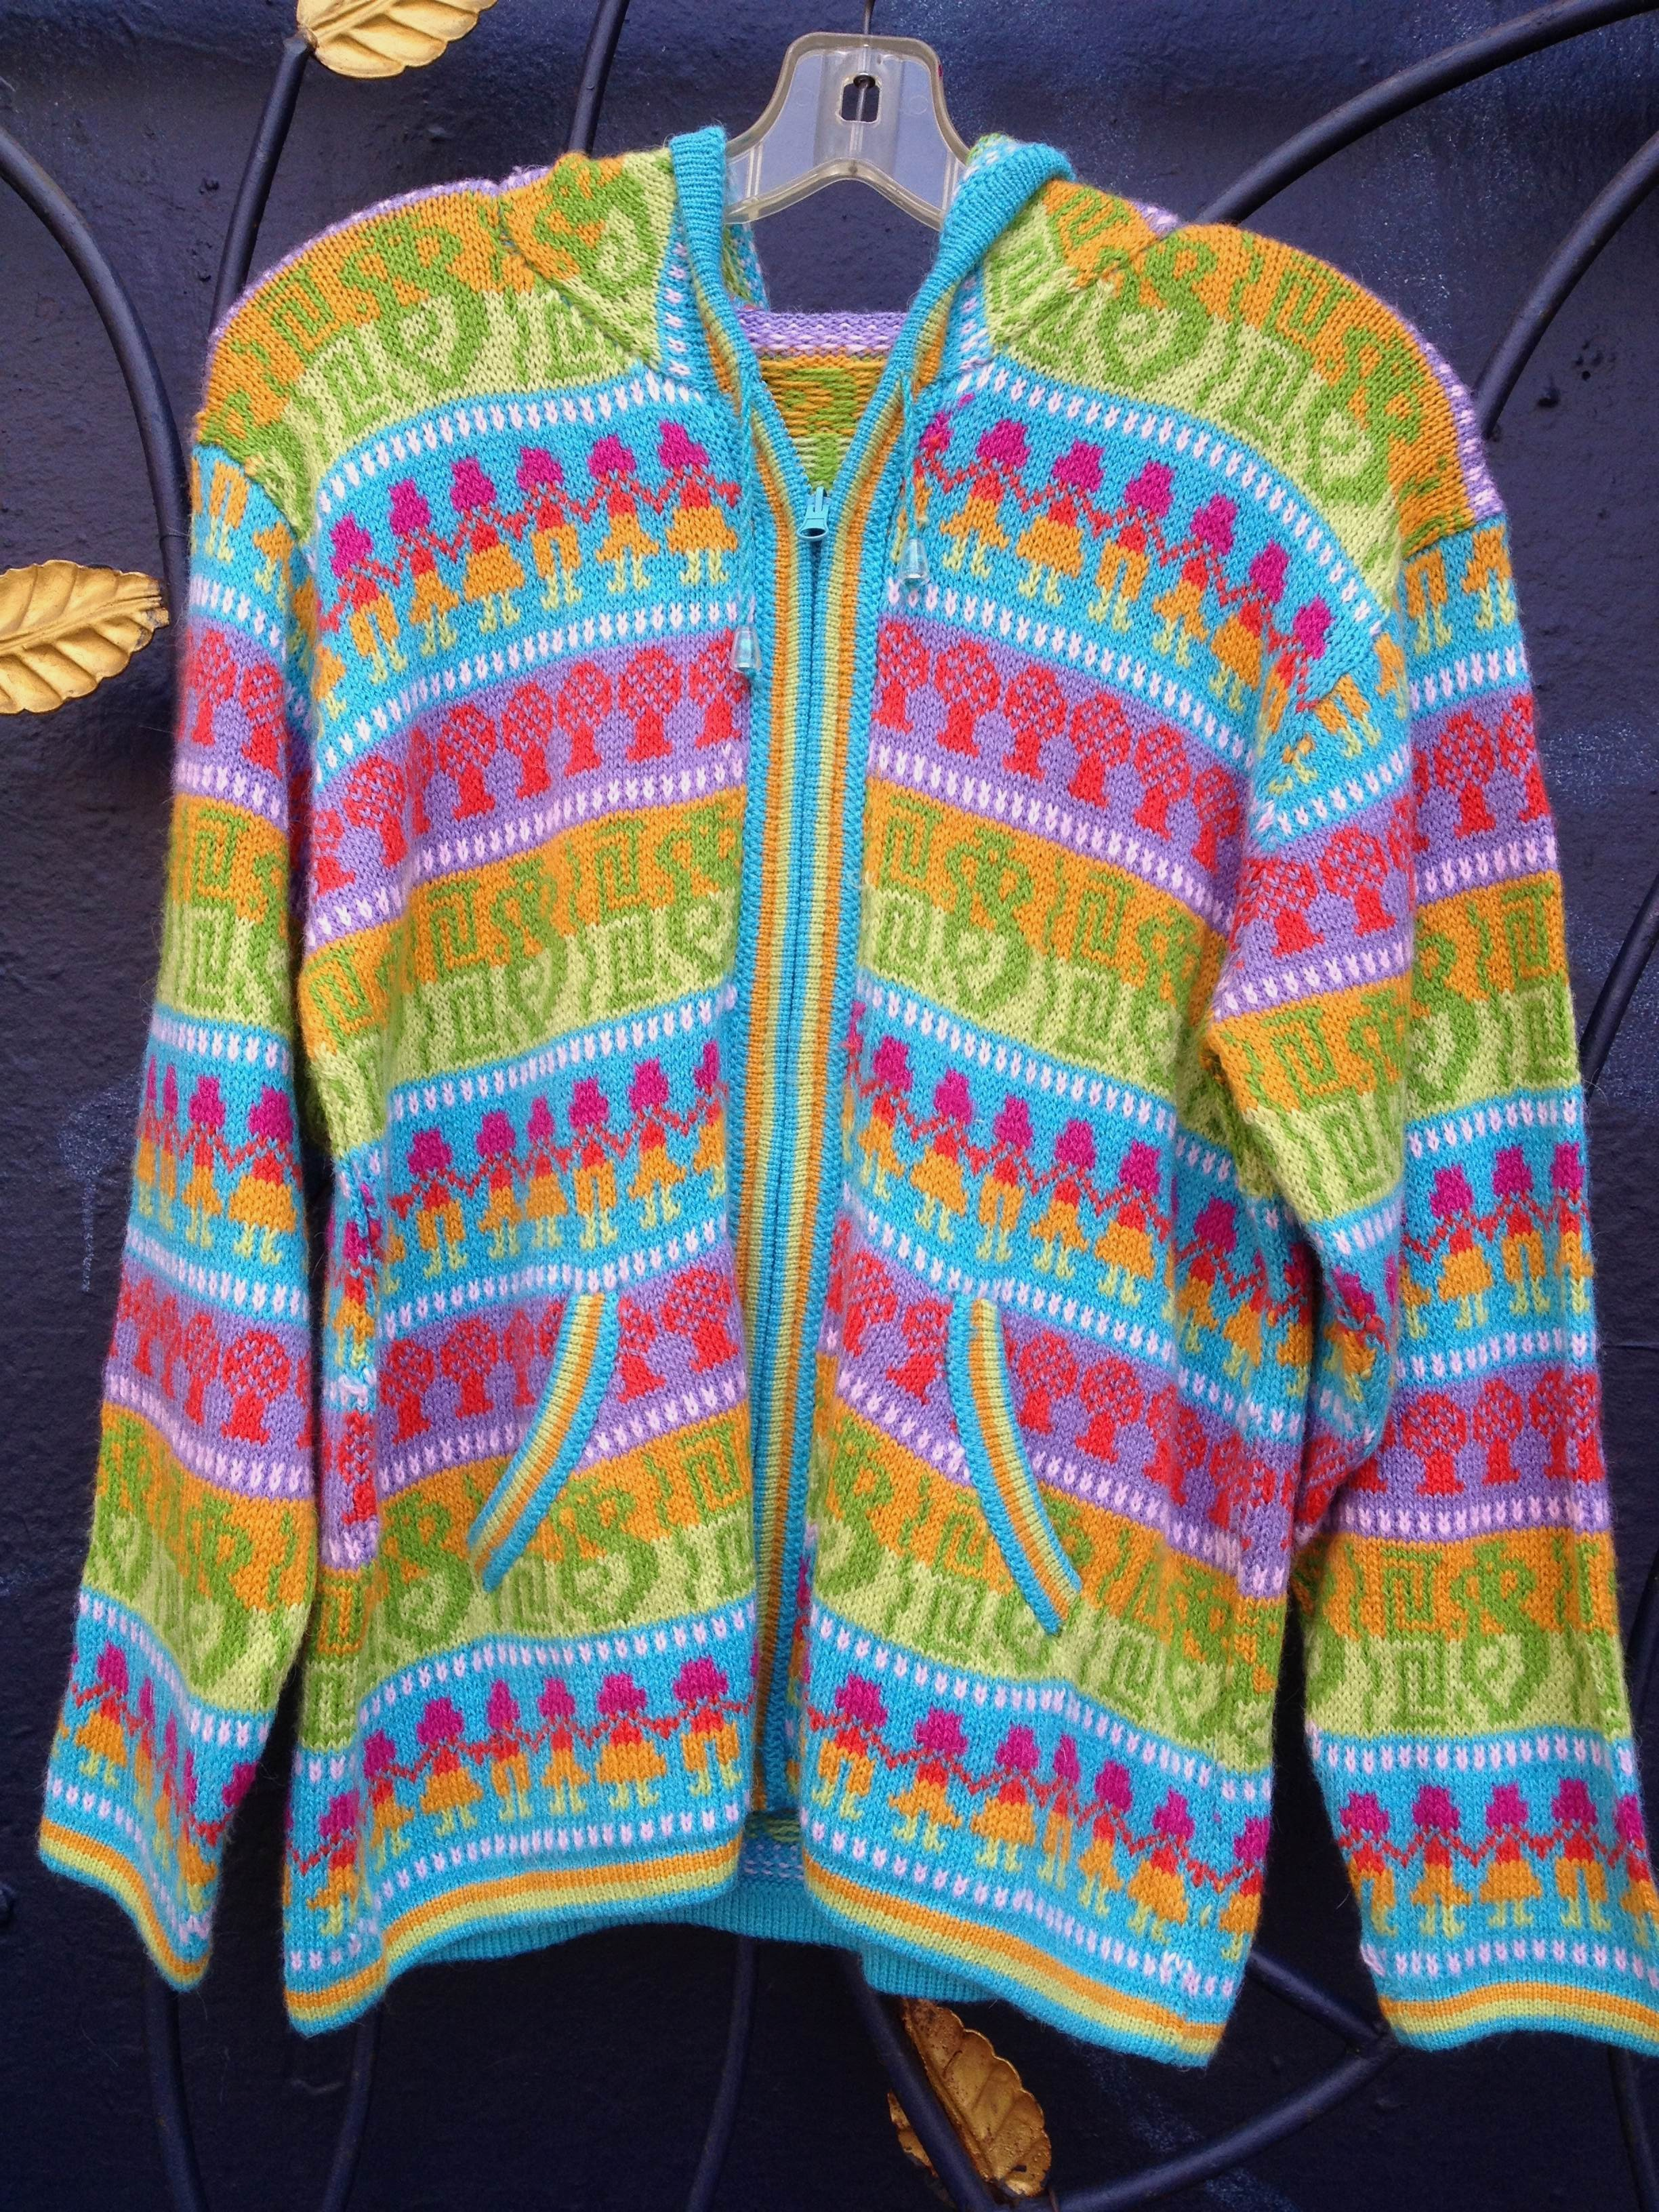 Sweaters from Peru for kids & adults 15 % off at Angel ...